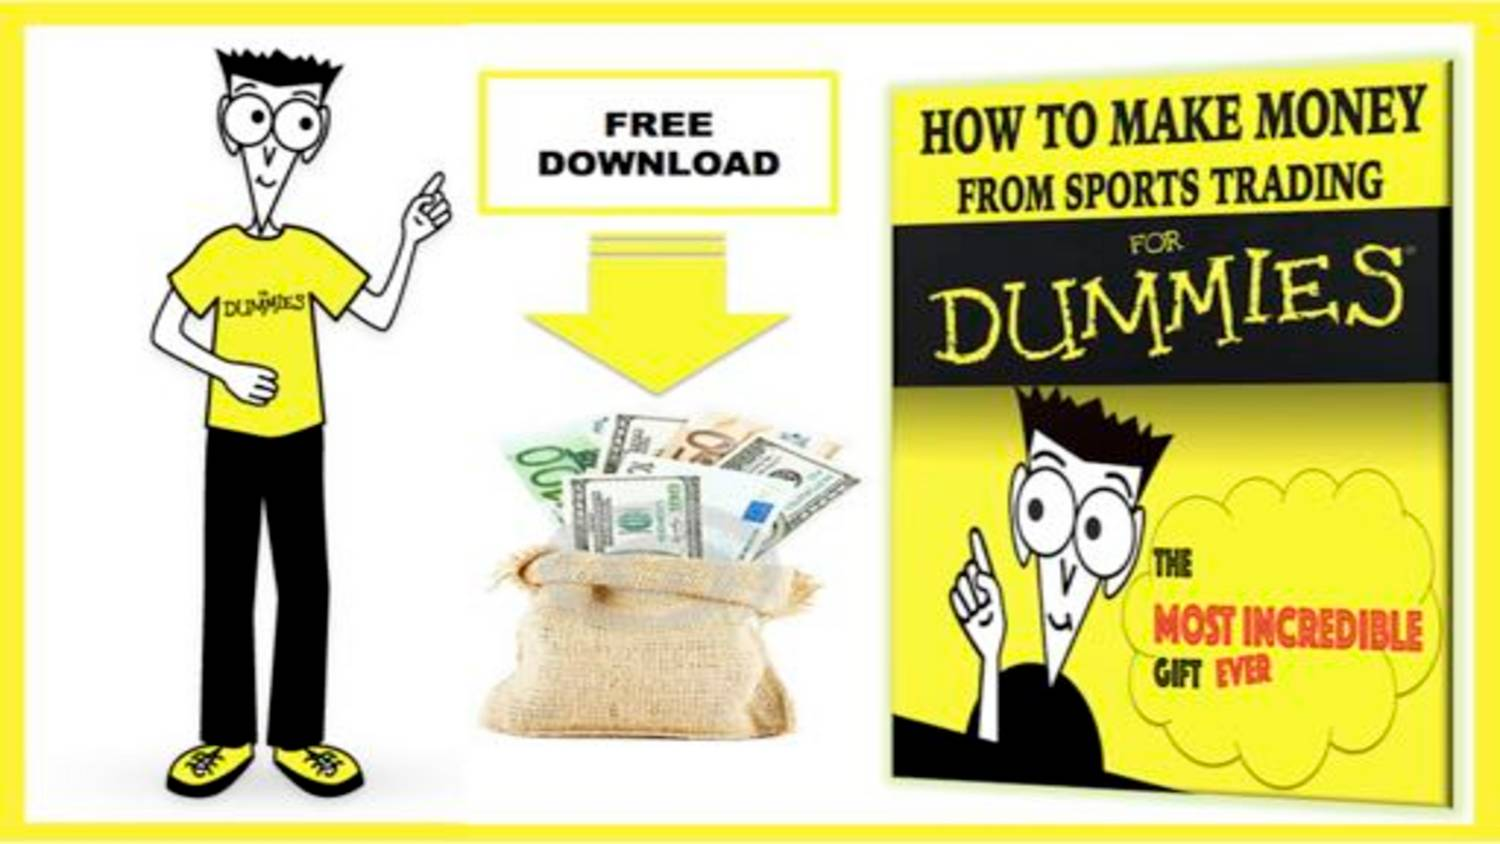 Forex trading for dummies 2013 pdf